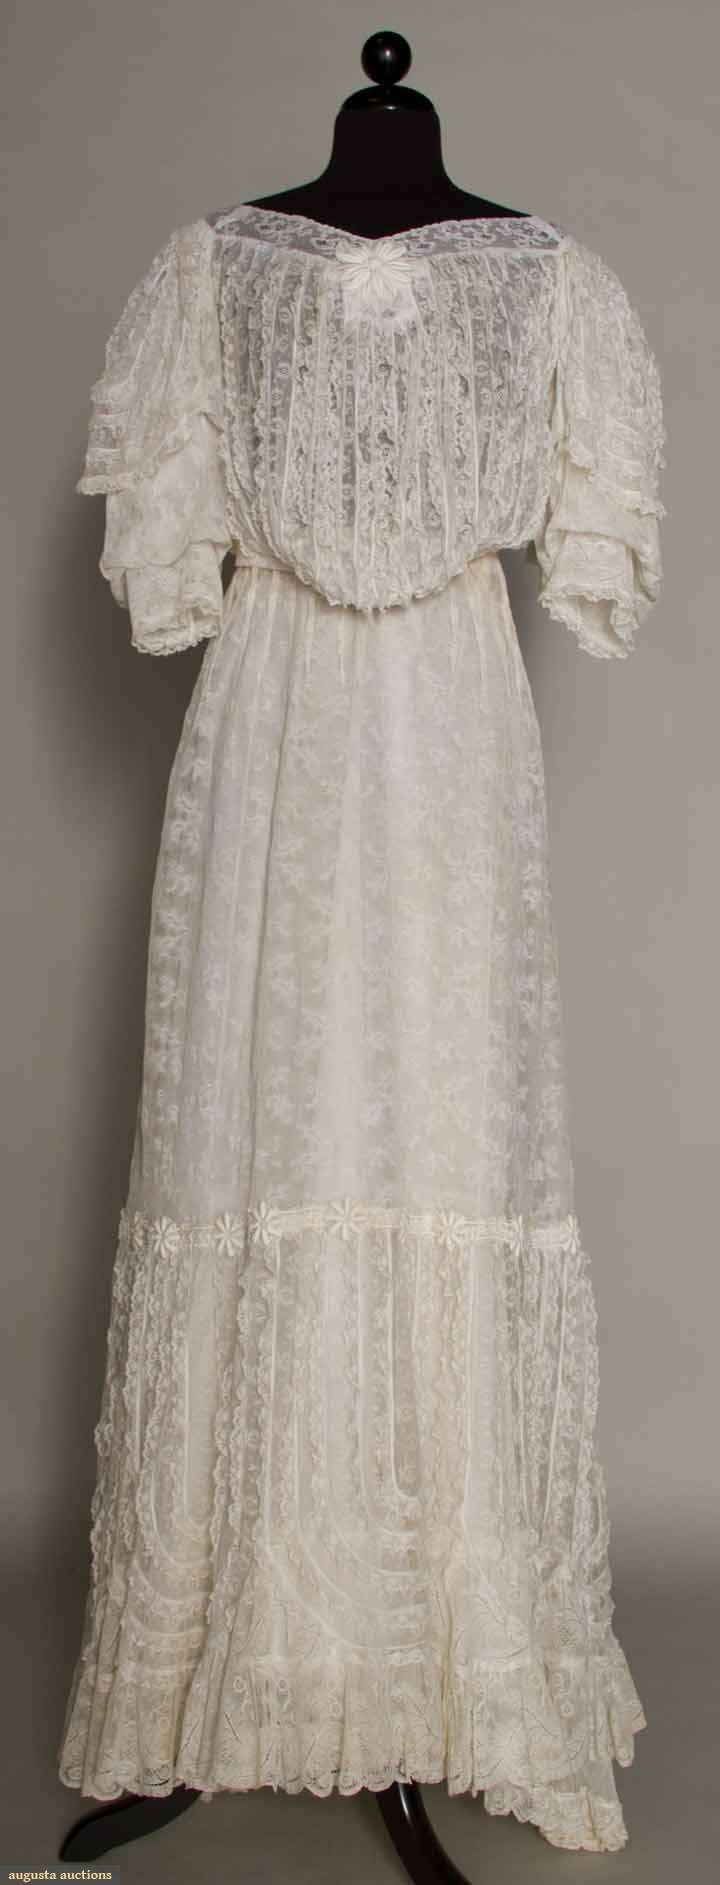 209 best 1900-1909: Women\'s Daywear images on Pinterest | Edwardian ...